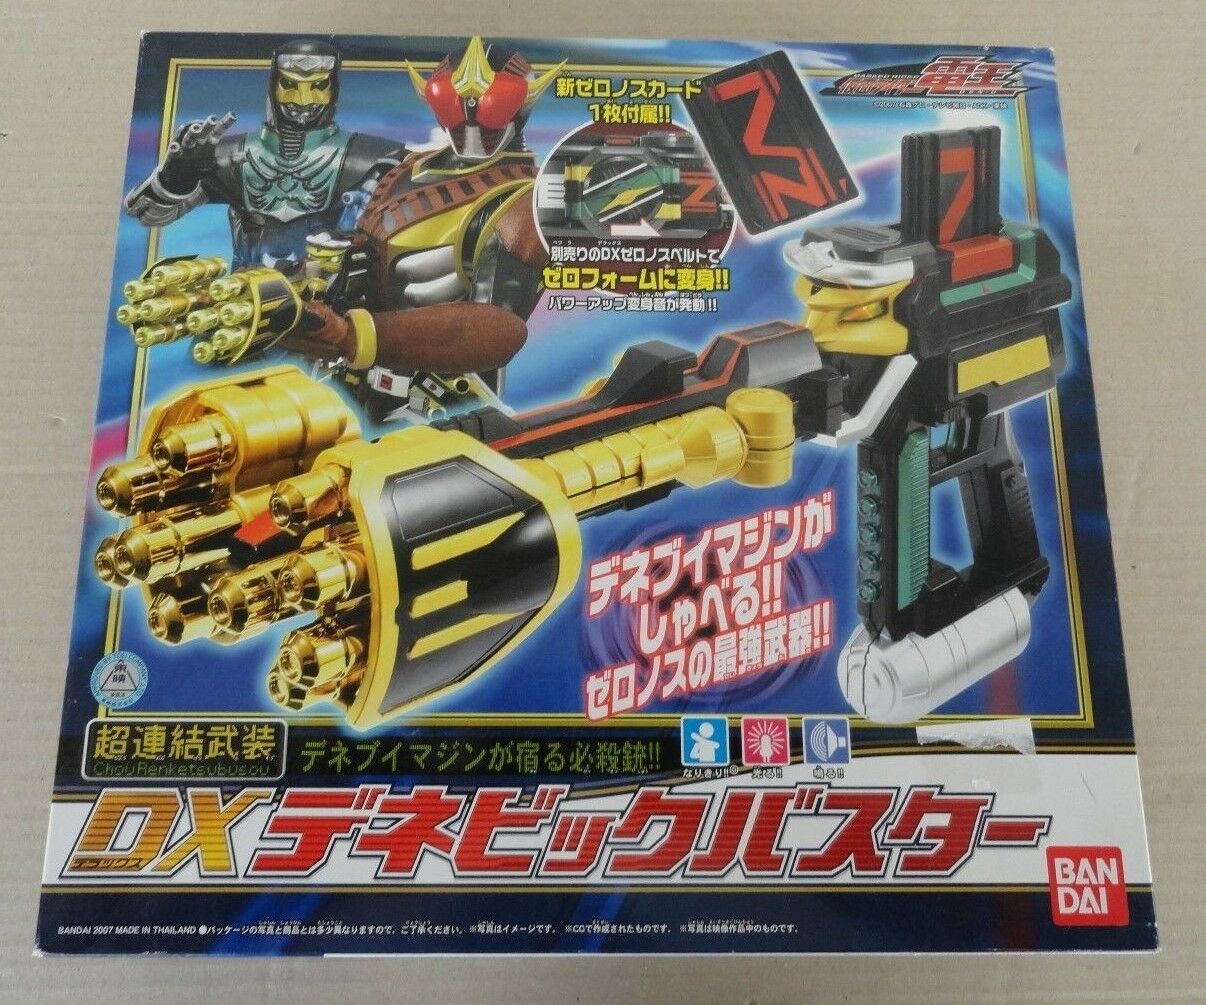 Dene DX Masked Rider Den-O Super  gree autoautobuster armed consolidated Beai bre nuovo  vanno a ruba